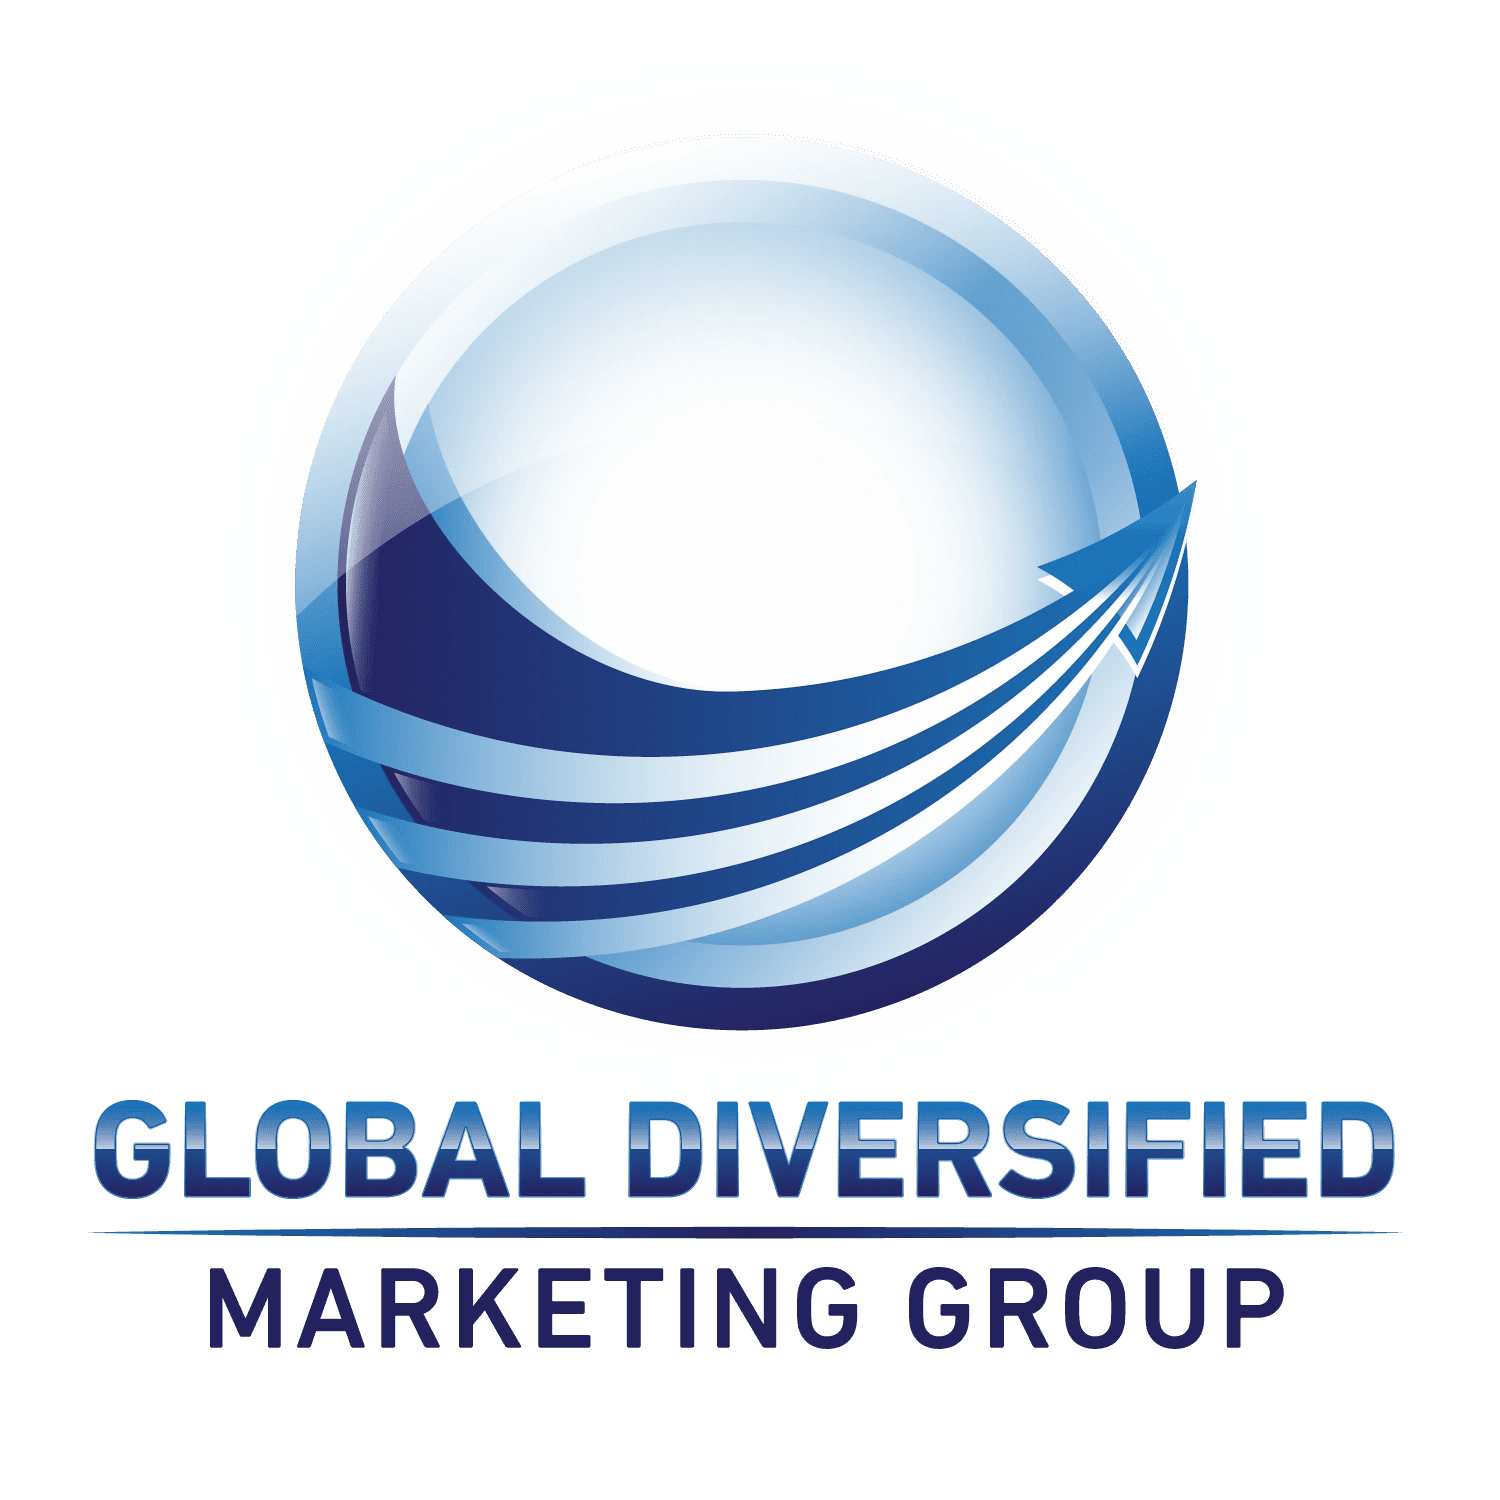 Global Diversified Marketing Group (Stock Symbol: GDMK) Supplies Premium Food and Snacks to the USA, Canada and Europe